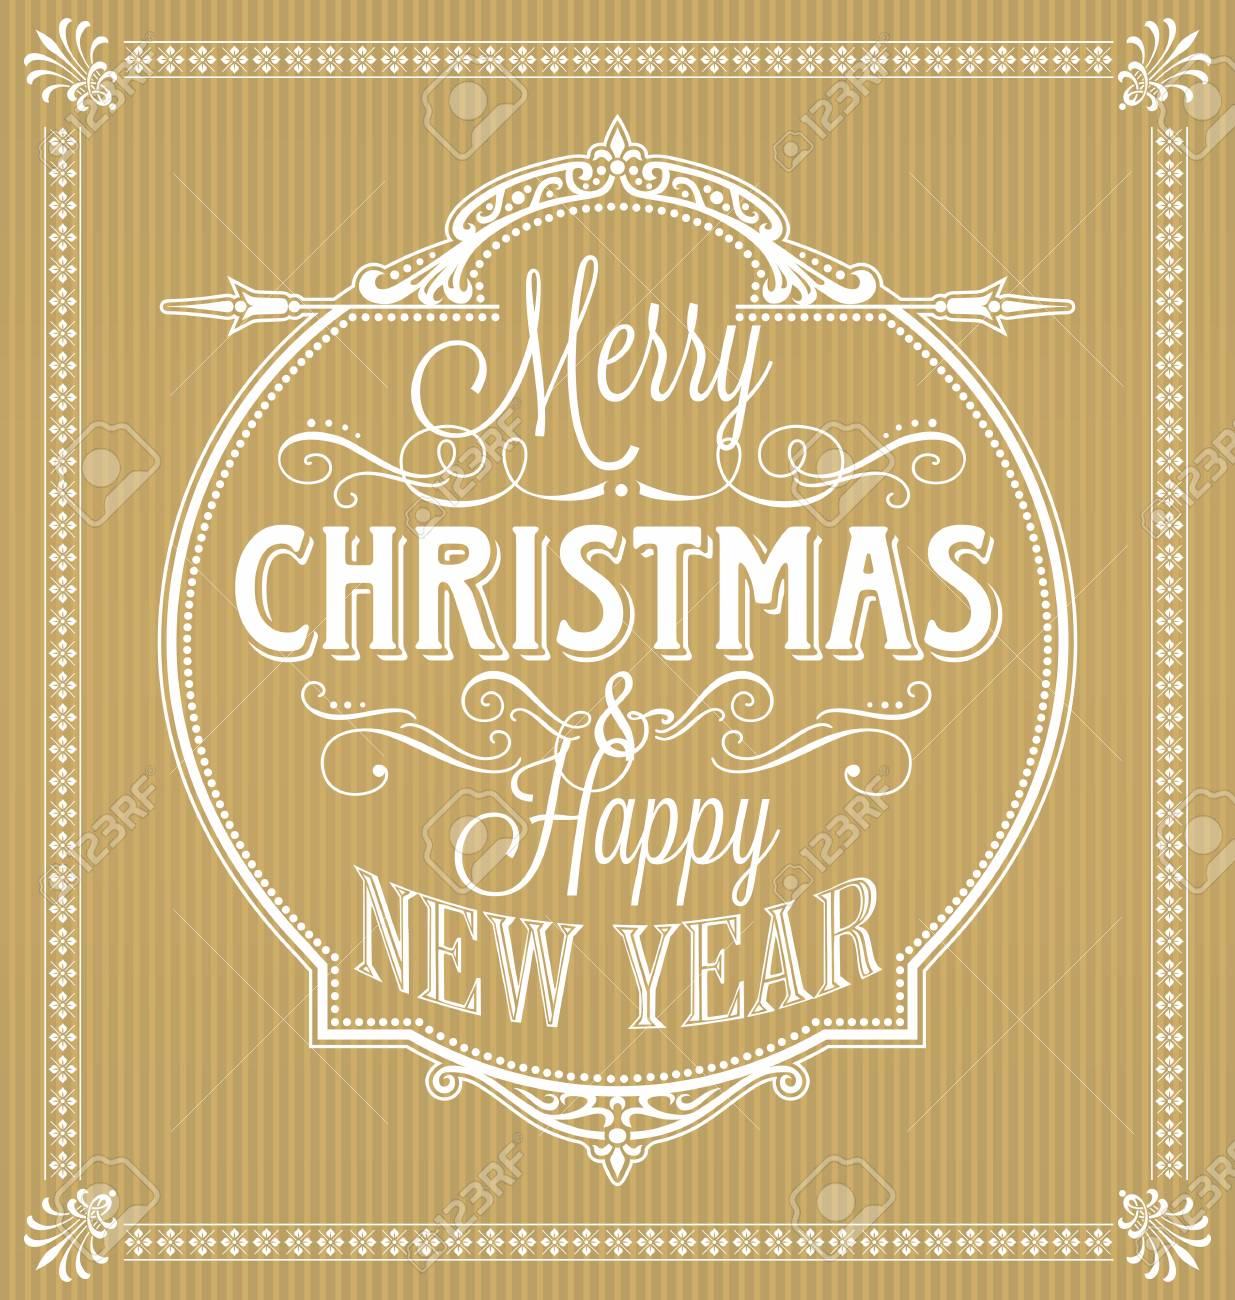 Vintage Merry Christmas.Vintage Merry Christmas And Happy New Year Calligraphic And Ornament